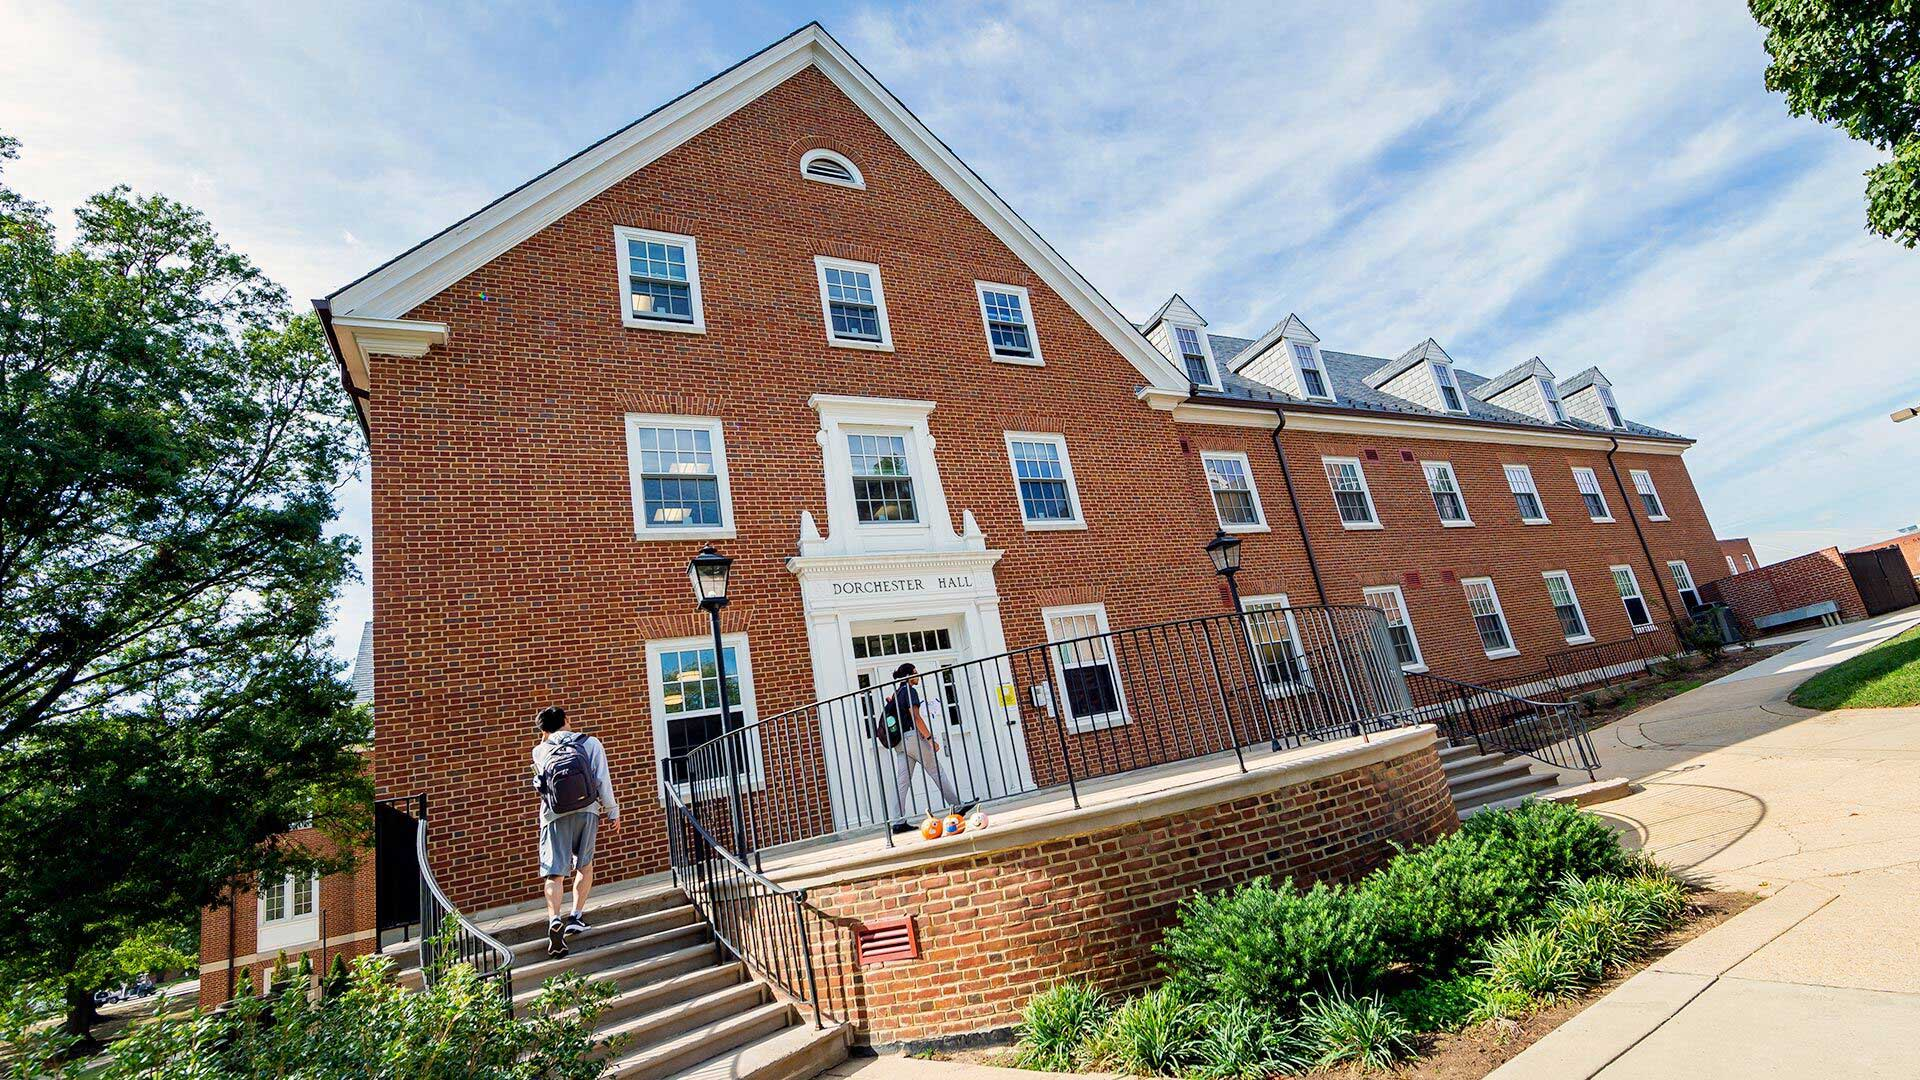 Dorchester Hall will be home to Honors Global Communities, one of two new Honors College living-learning programs launching in Fall 2022; the other is Interdisciplinary Business Honors. Photo by John T. Consoli.